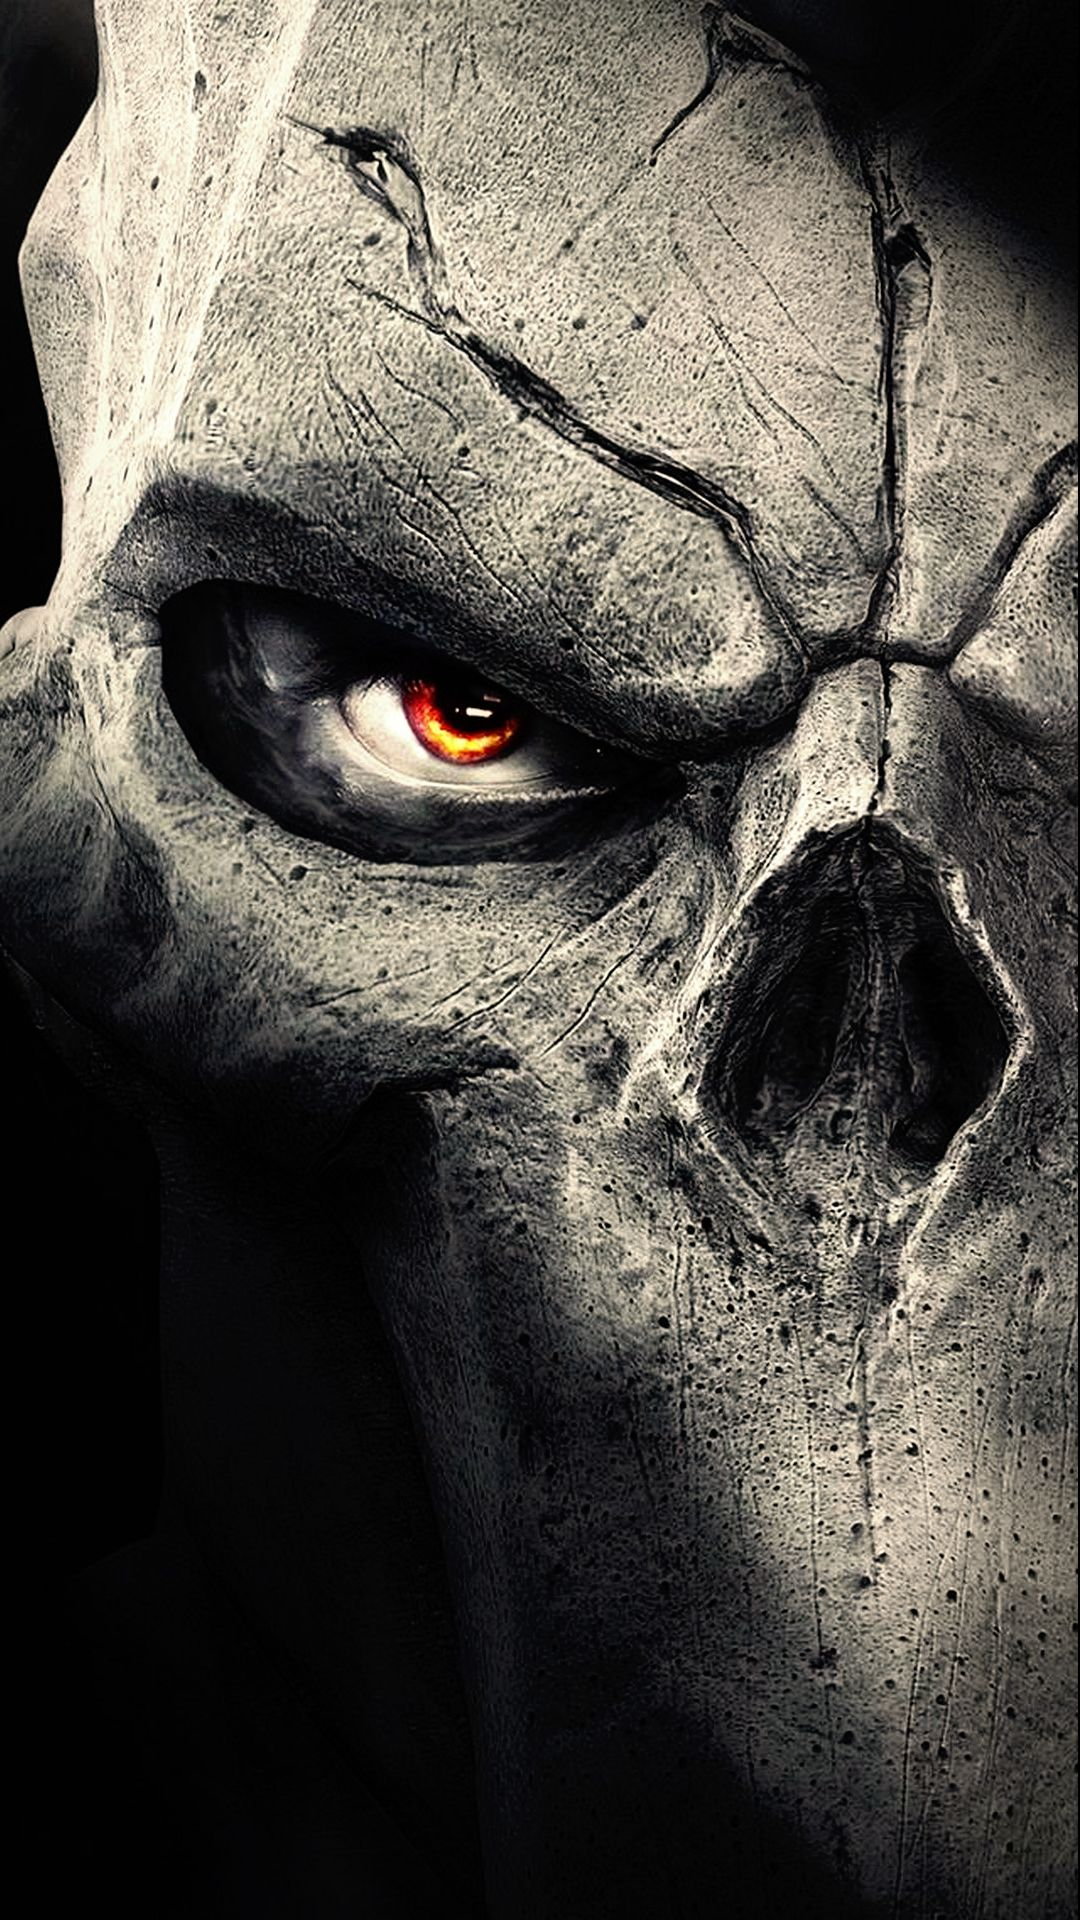 Horror Phone Wallpapers - Top Free Horror Phone Backgrounds